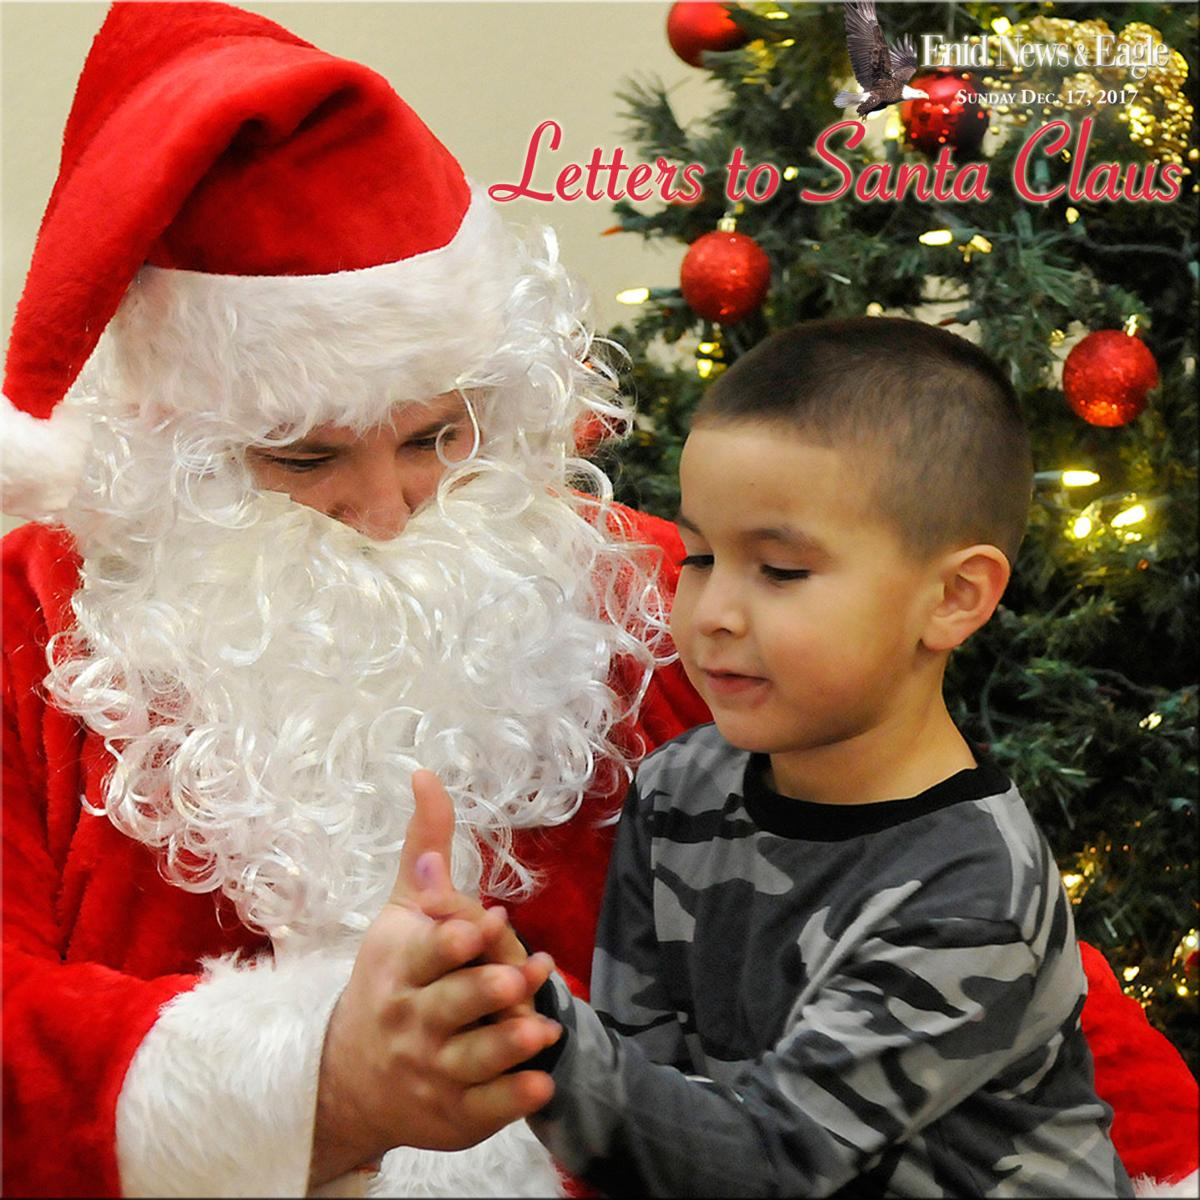 Letters To Santa Claus   News  EnidnewsCom